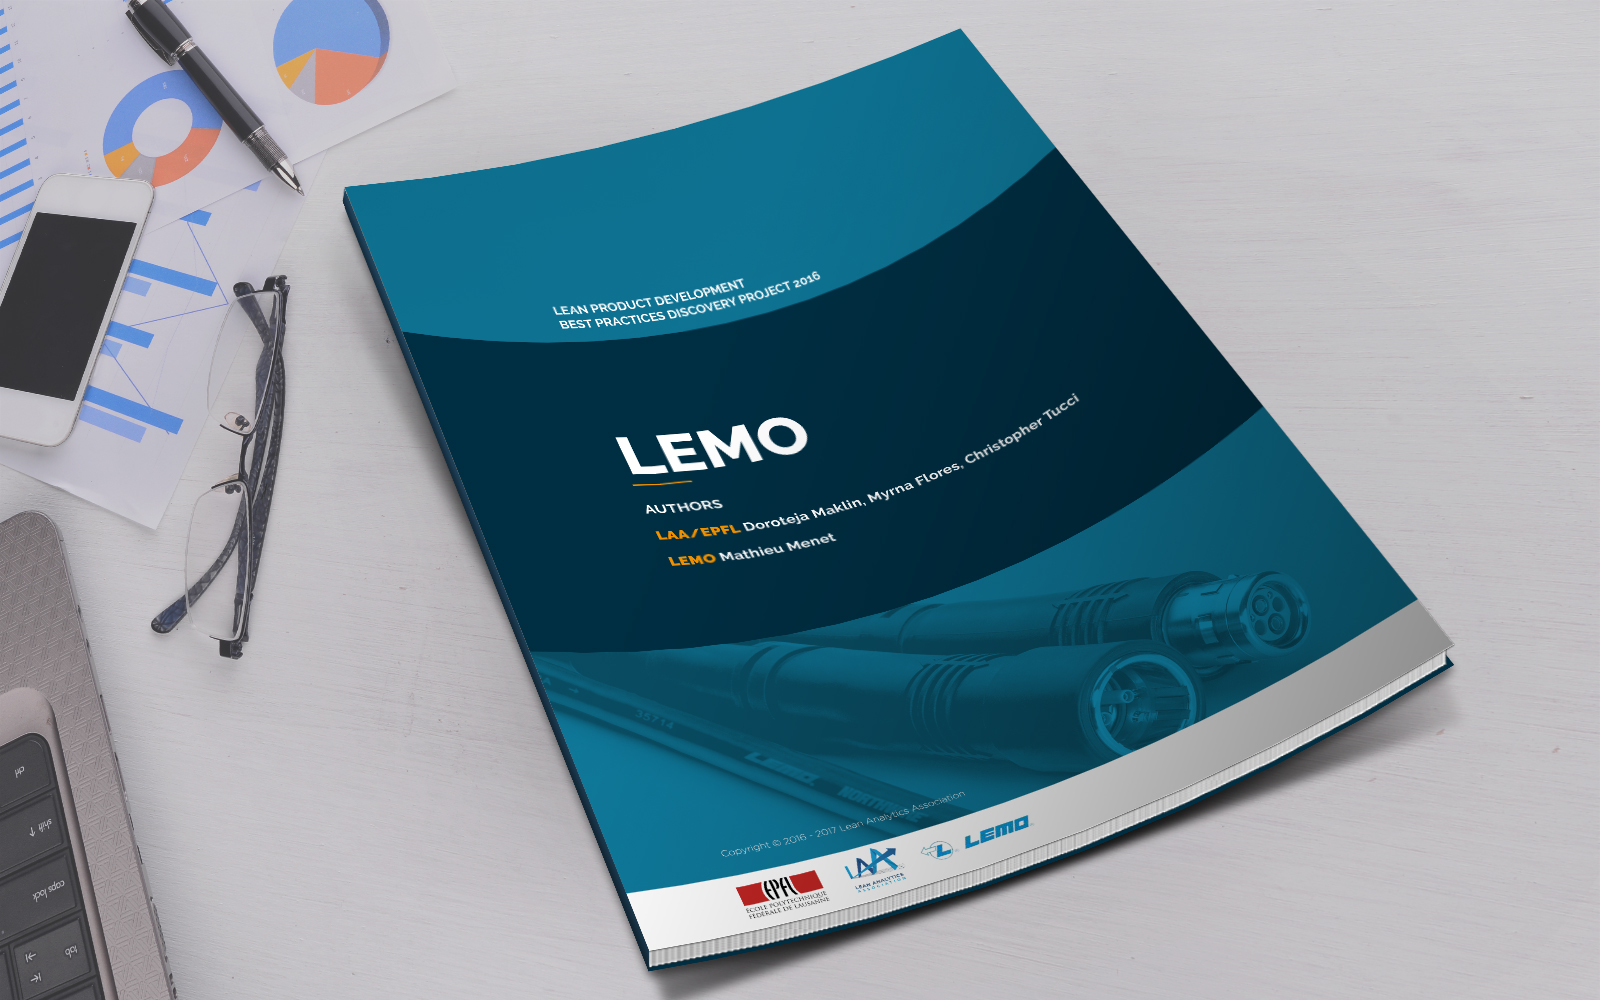 LAA-Library_Cases2016_Lemo